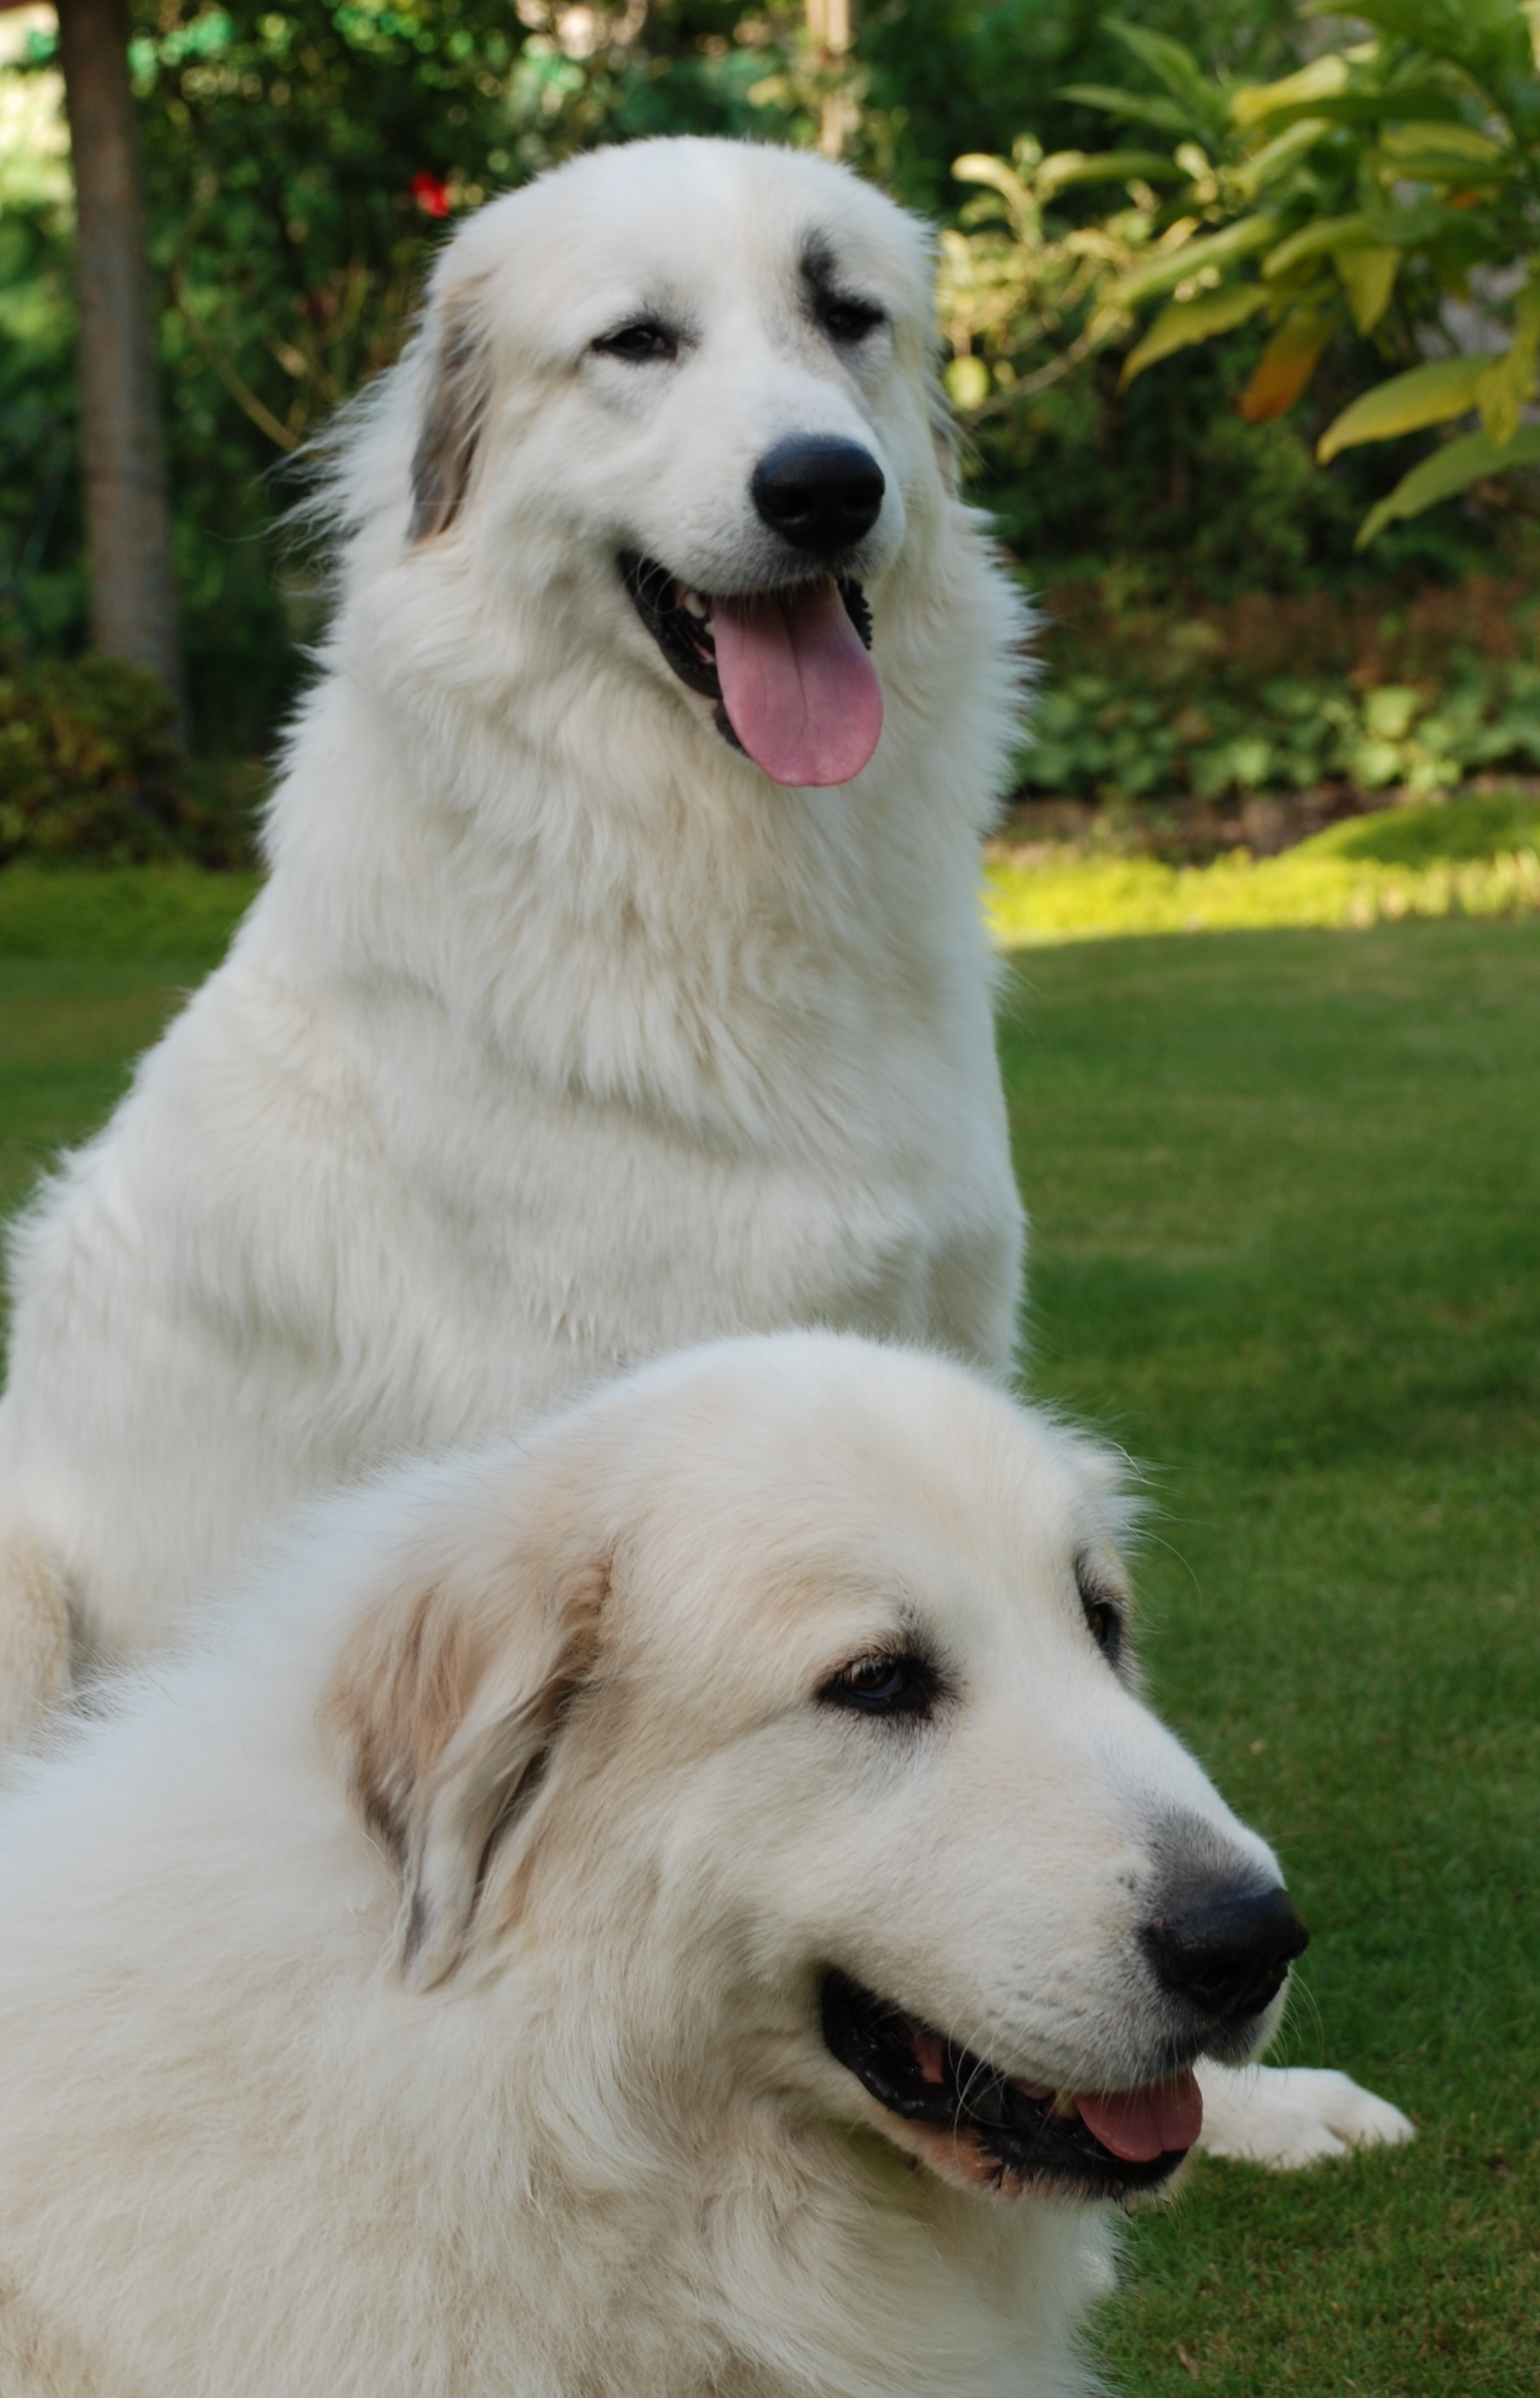 cute great pyrenees dog photo